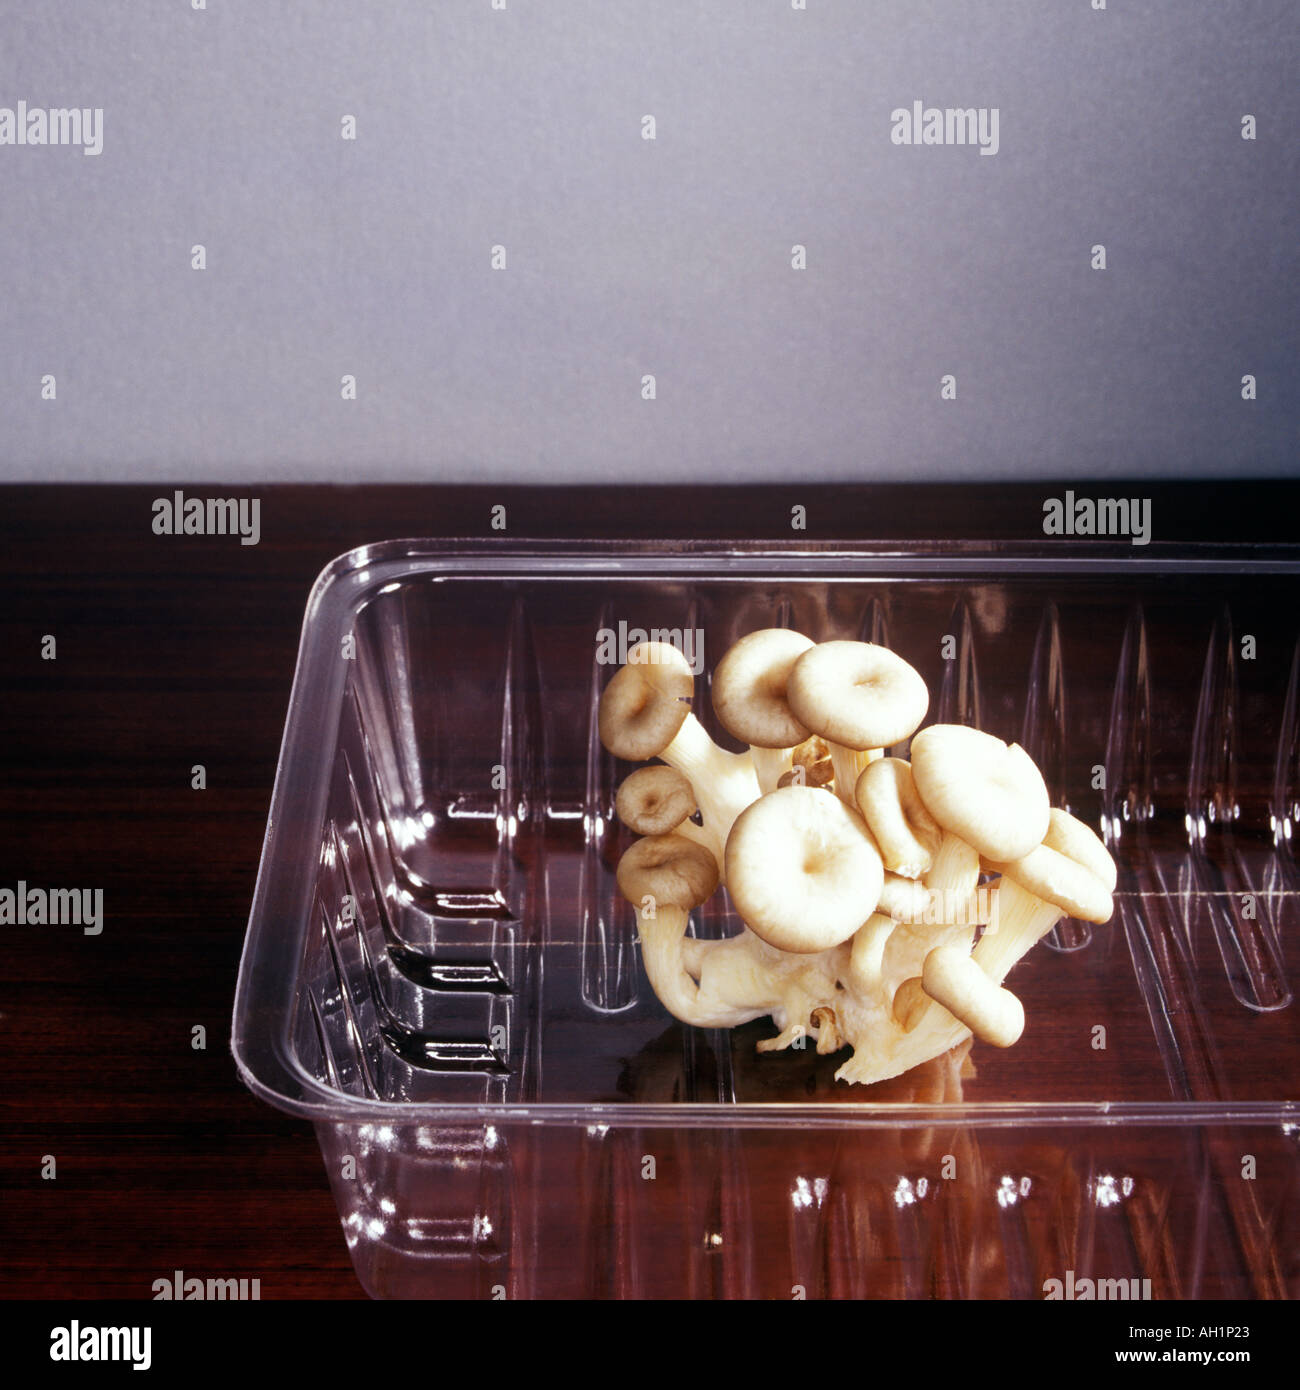 Many Shimeji Mushroom S In Clear Open Plastic Container On Dark